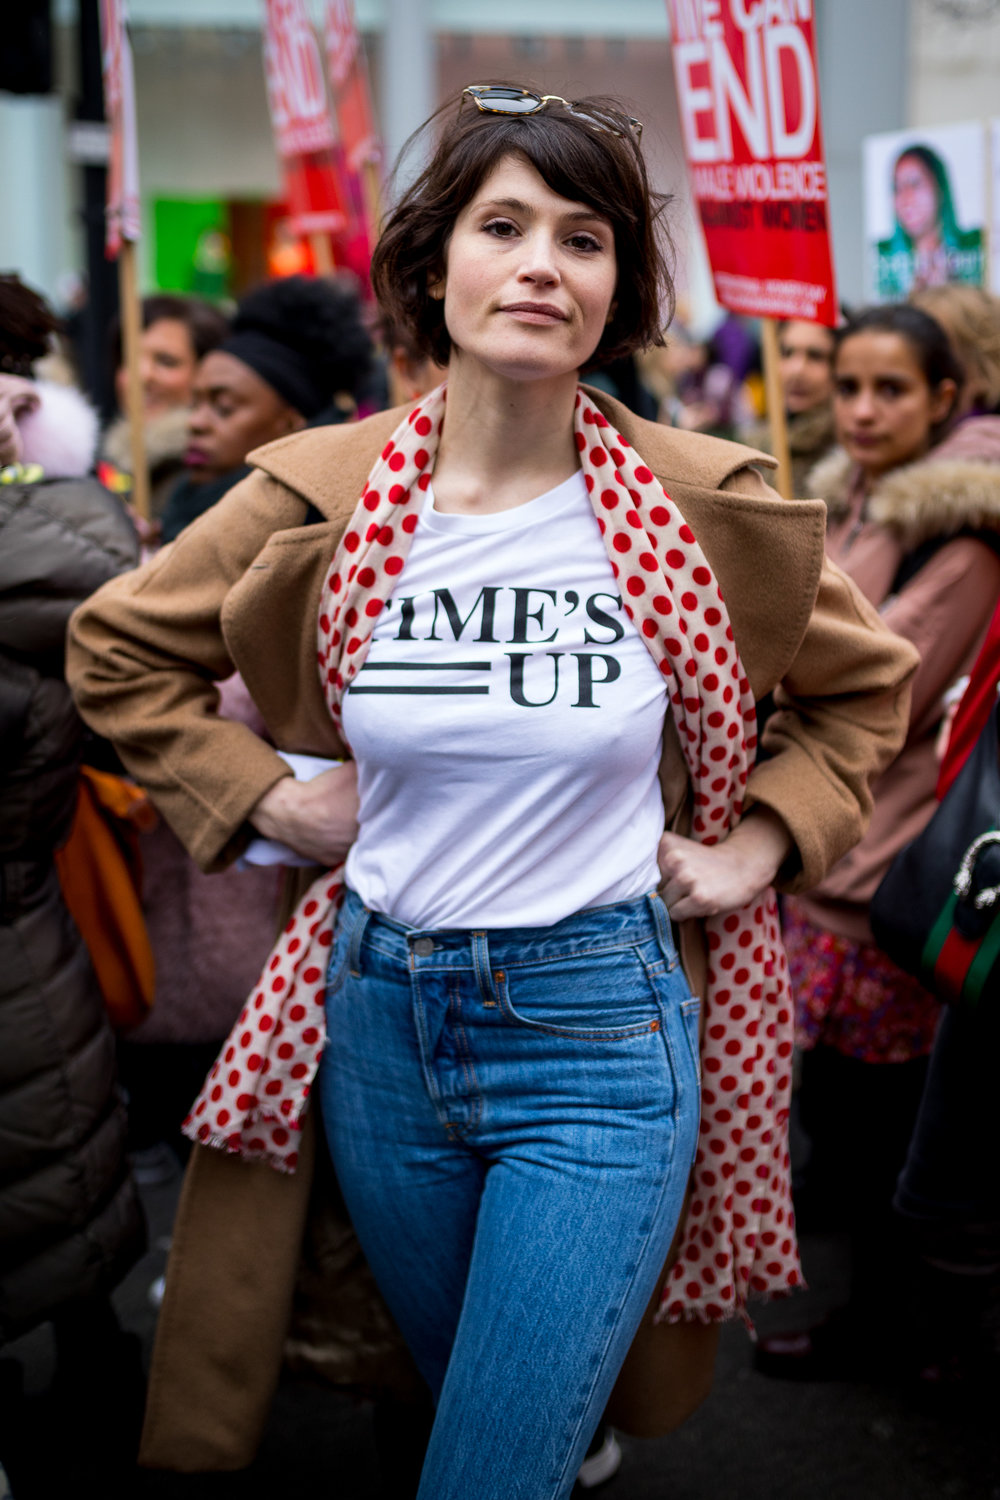 Gemma Arterton takes part in the 'Million Women Rise' march through central London, campaigning against domestic violence against women. Organisers have asked participants to wear red for the demonstration. On Thursday (8 March) this week, International Women's Day was celebrated. March 2018 - London, UK.